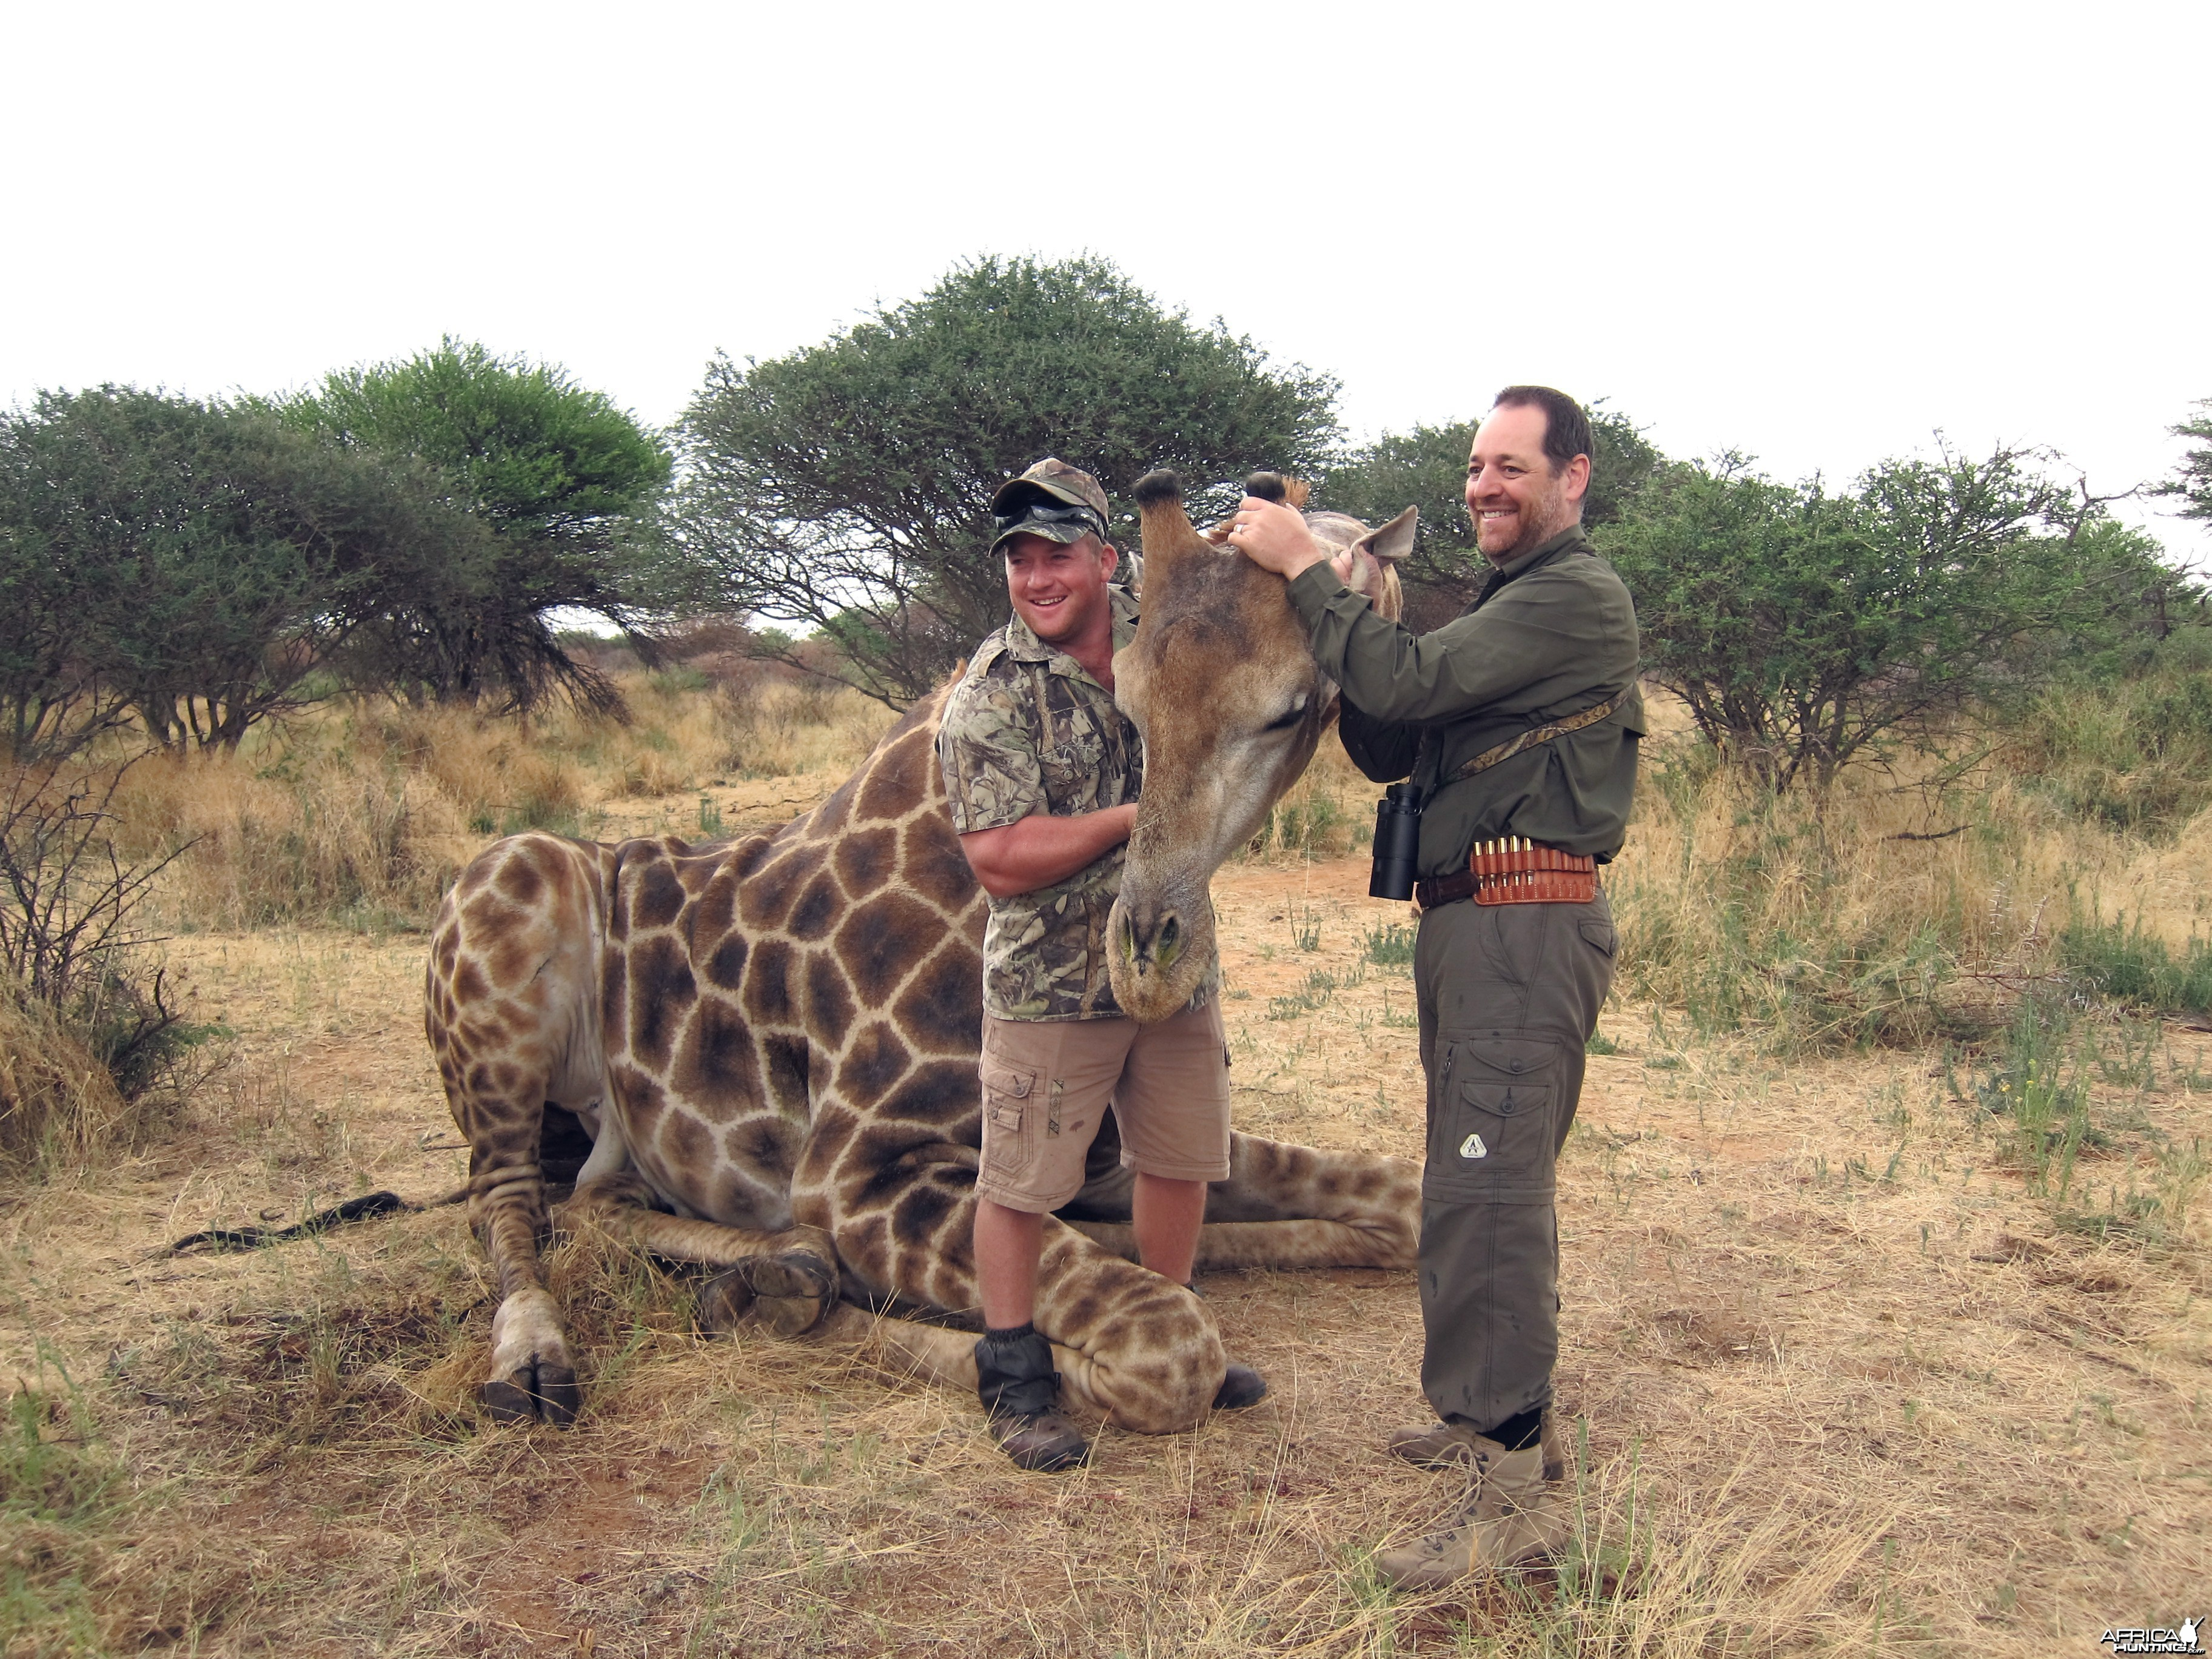 Setting up a Giraffe for trophy pictures